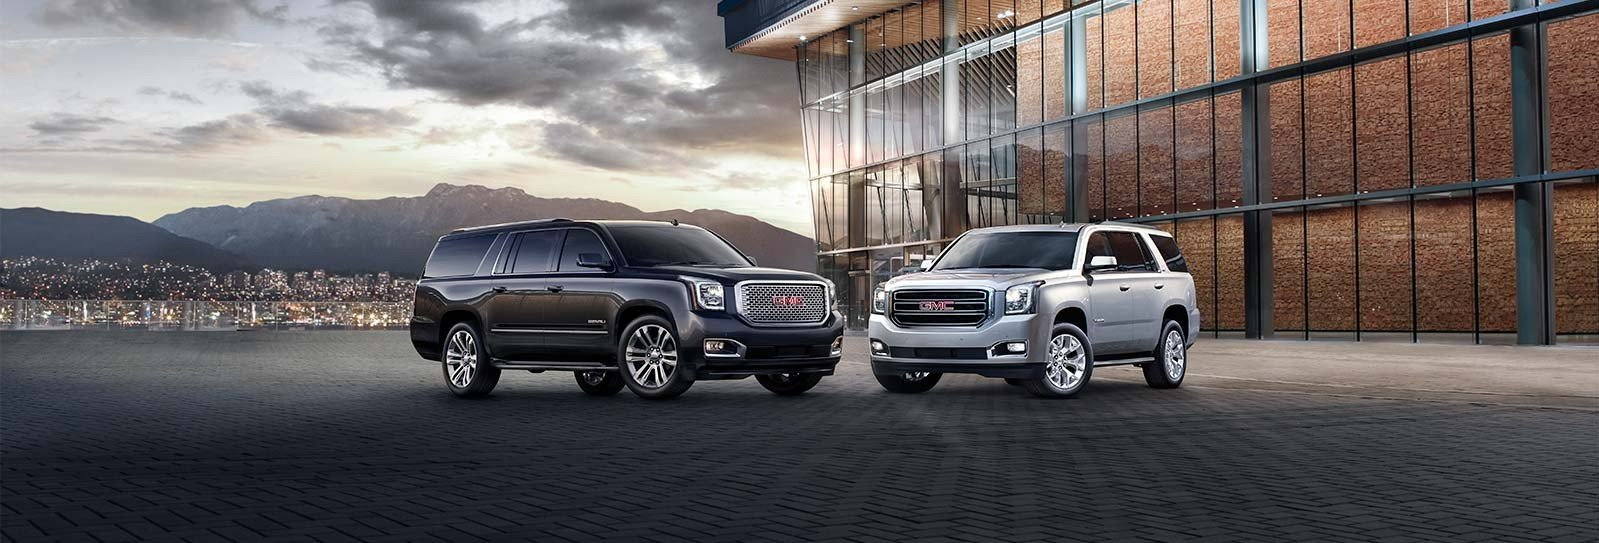 GMC suv's for sale at Cable Dahmer Auto Direct